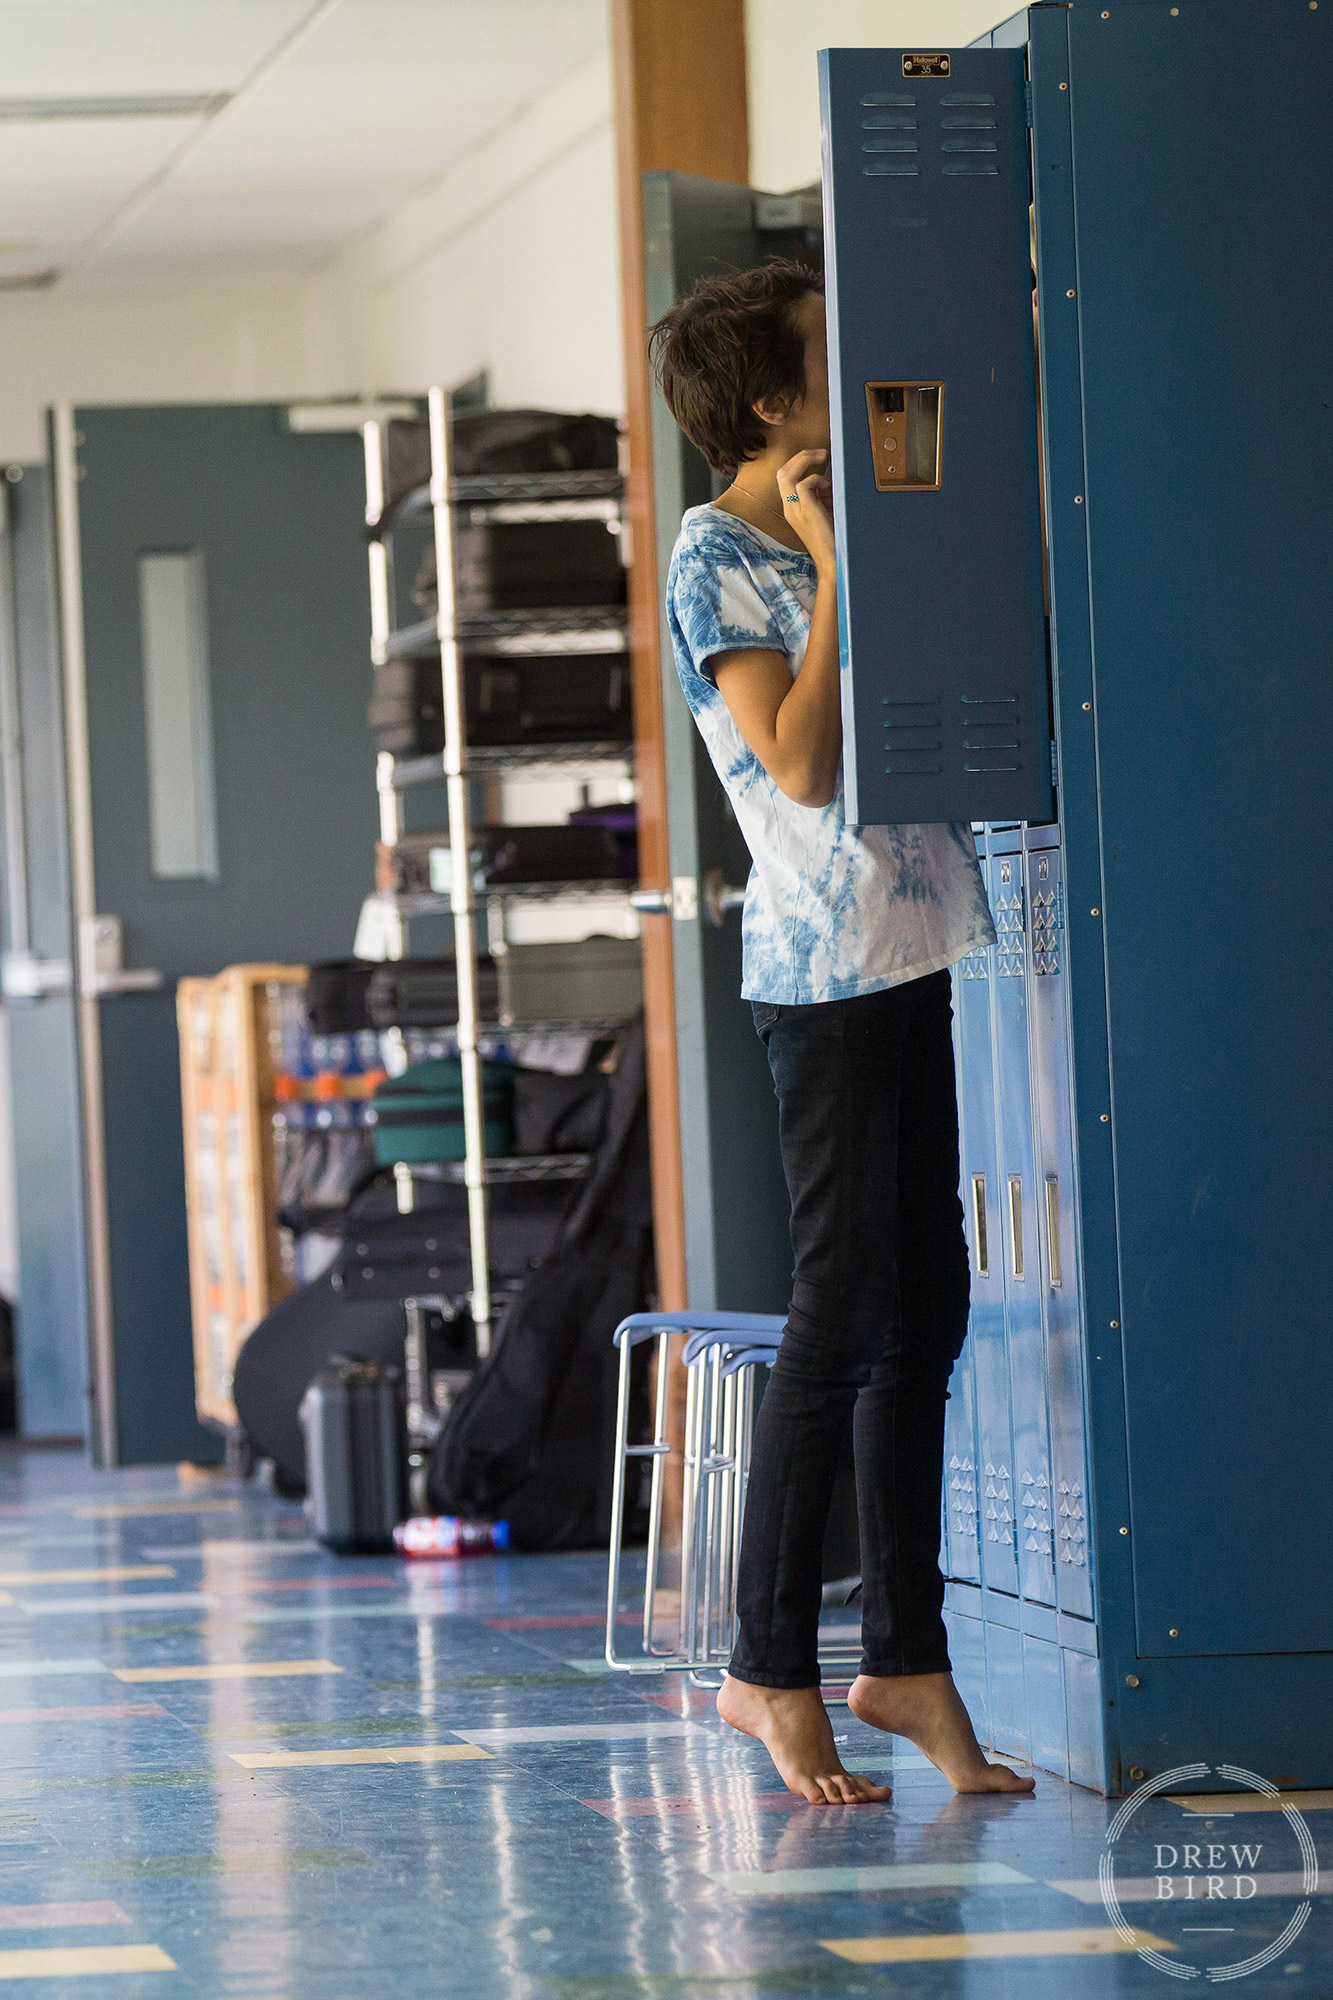 A student in bare feet on tip toes at their locker at Poughkeepsie Day School in Hudson Valley, New York. San Francisco education marketing photographer Drew Bird. San Jose school branding photographer.